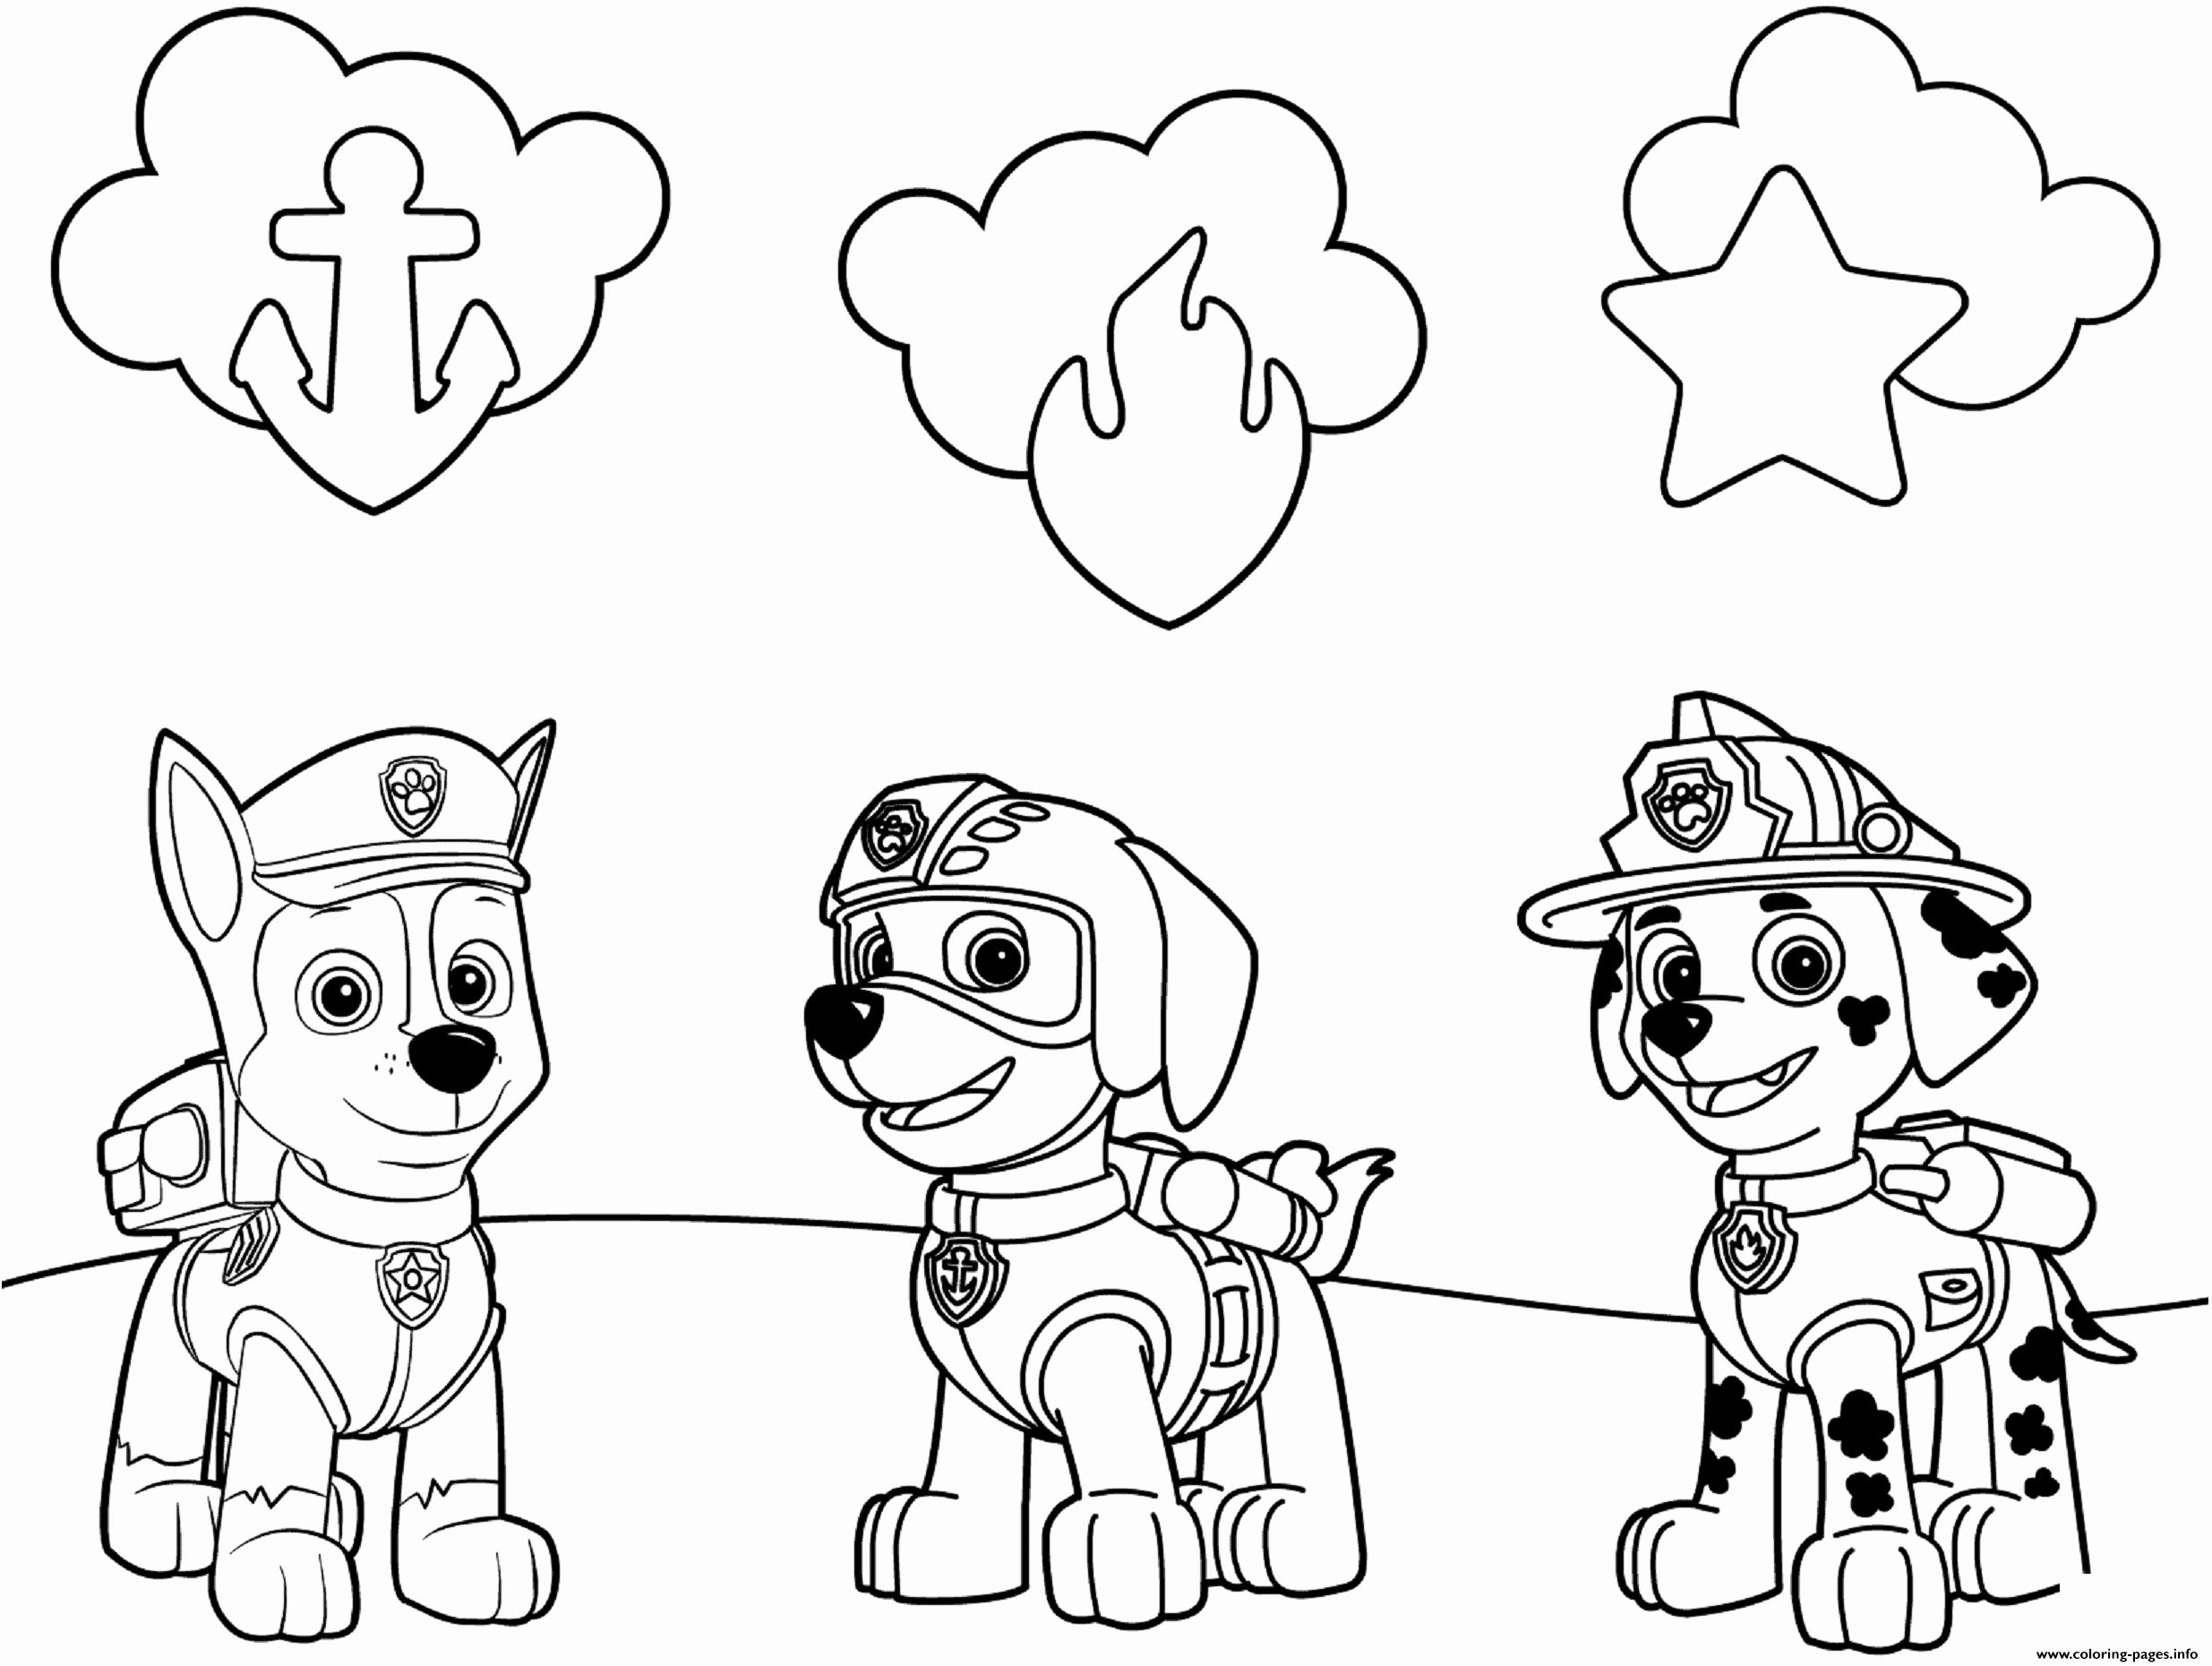 Coloring Pages Paw Patrol In 2020 Paw Patrol Coloring Pages Paw Patrol Printables Paw Patrol Coloring